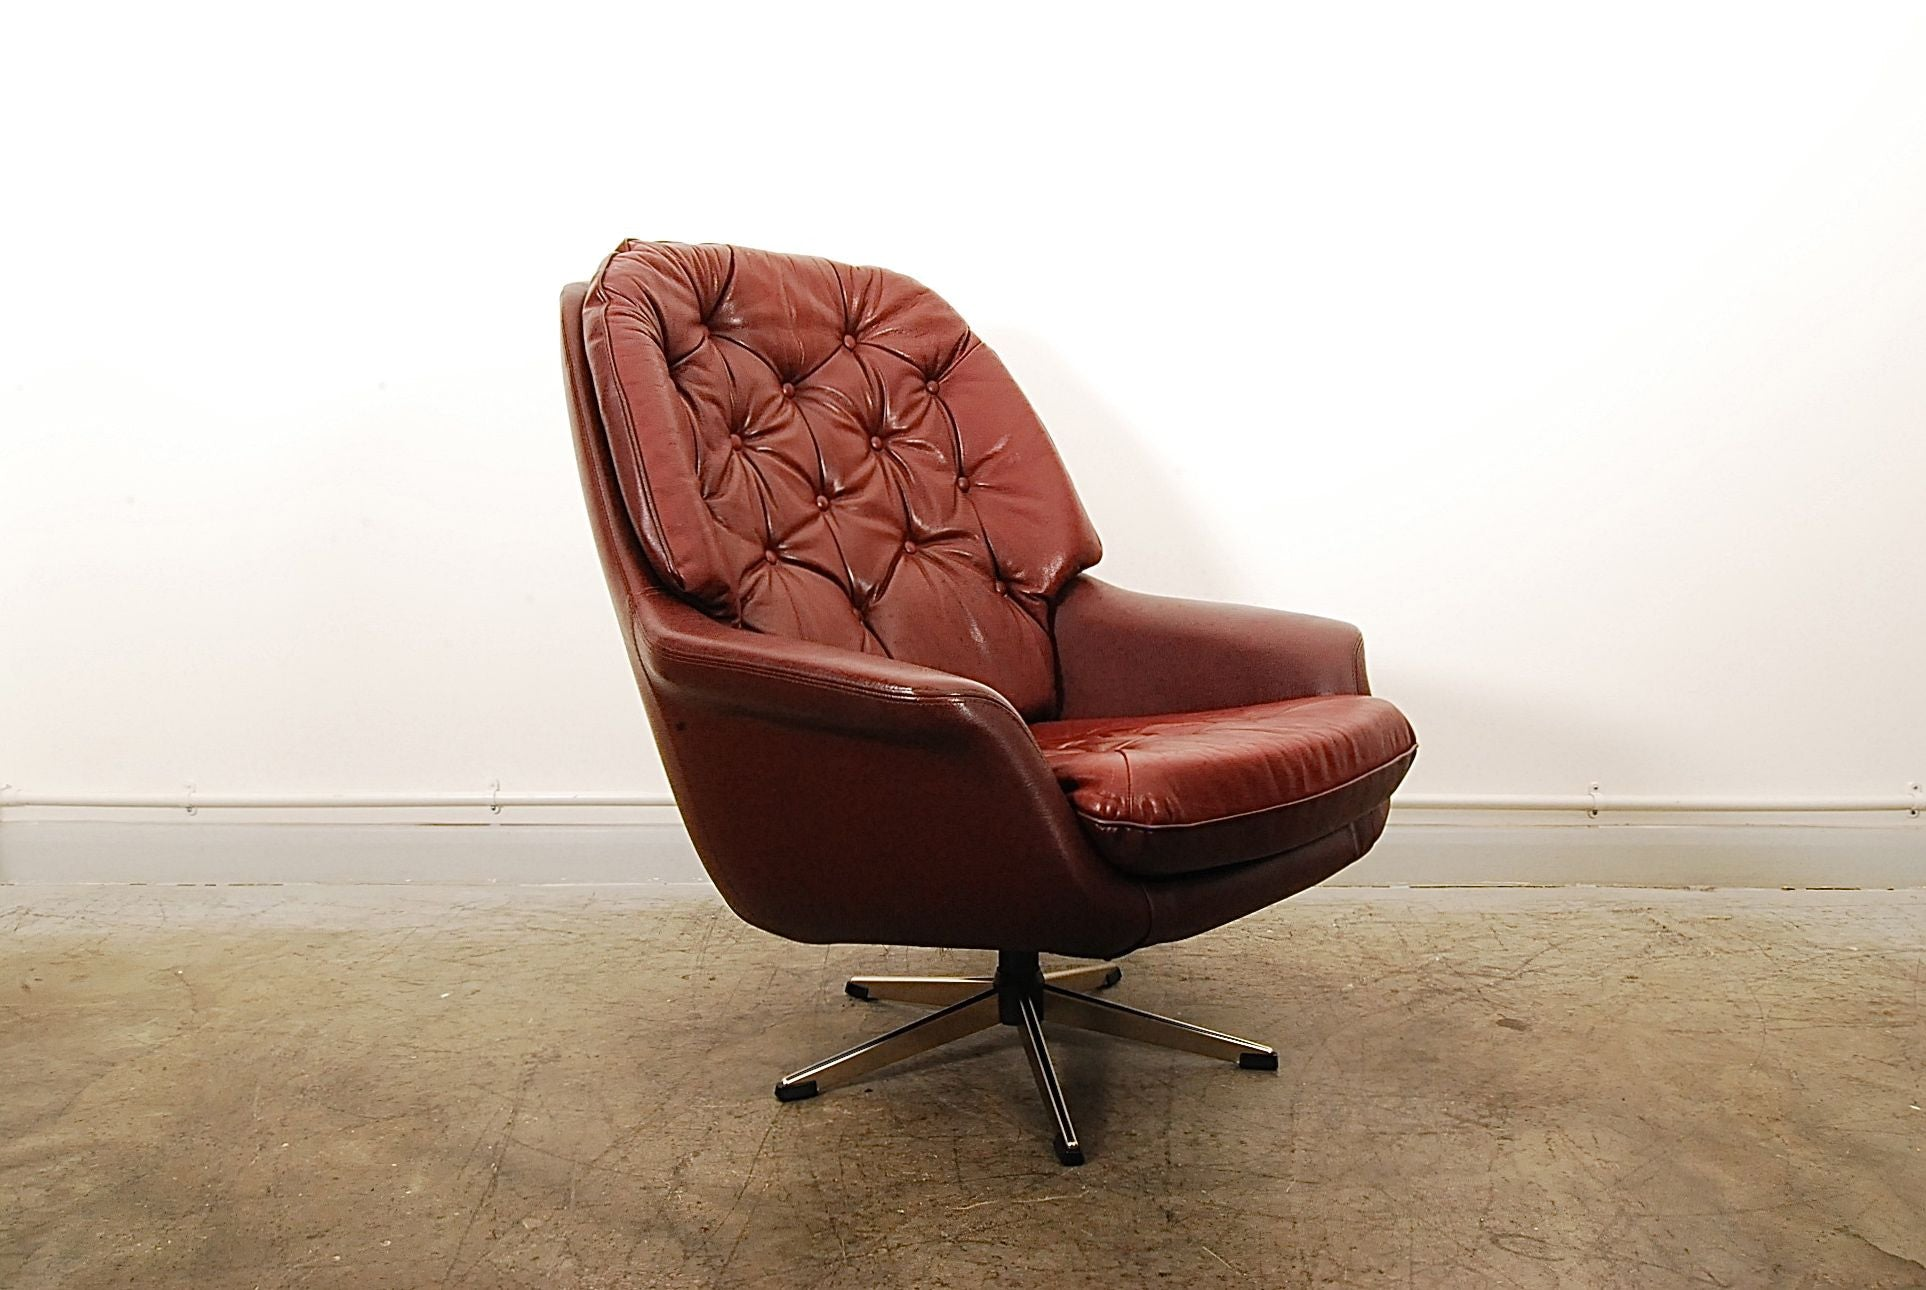 Maroon leather bucket chair